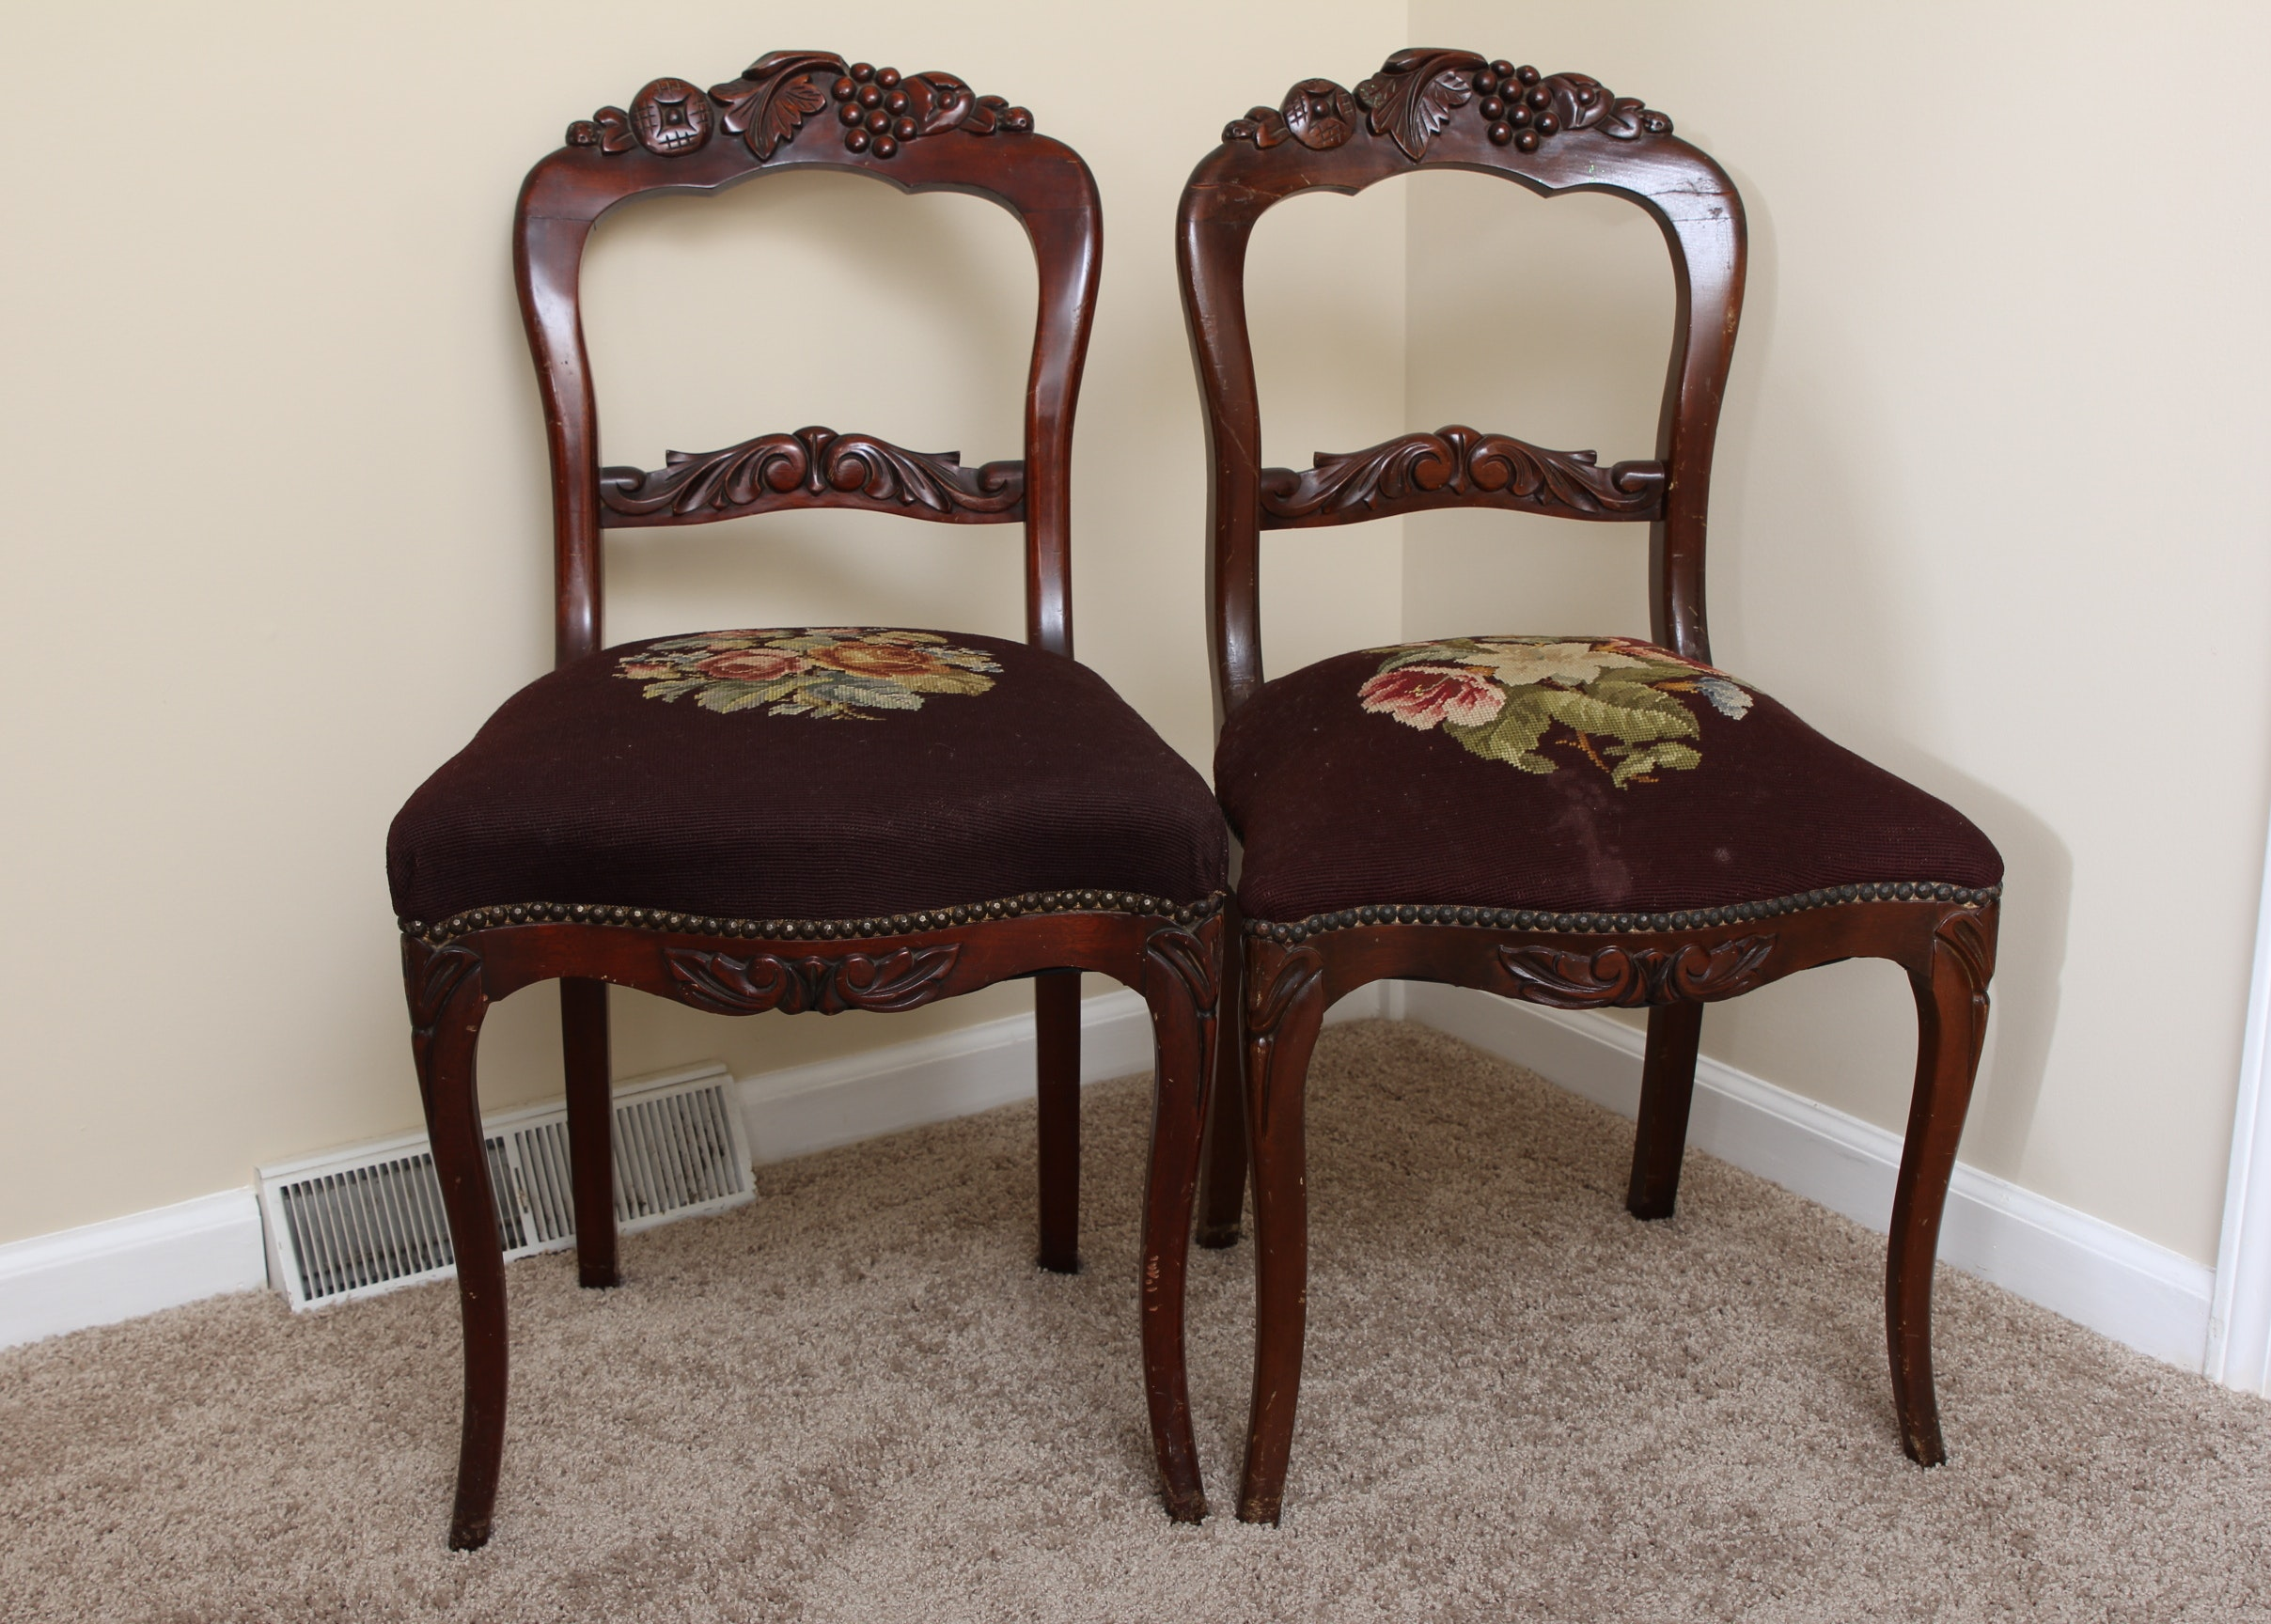 Rococo Revival Rosewood Chairs With Needlepoint Seat ...